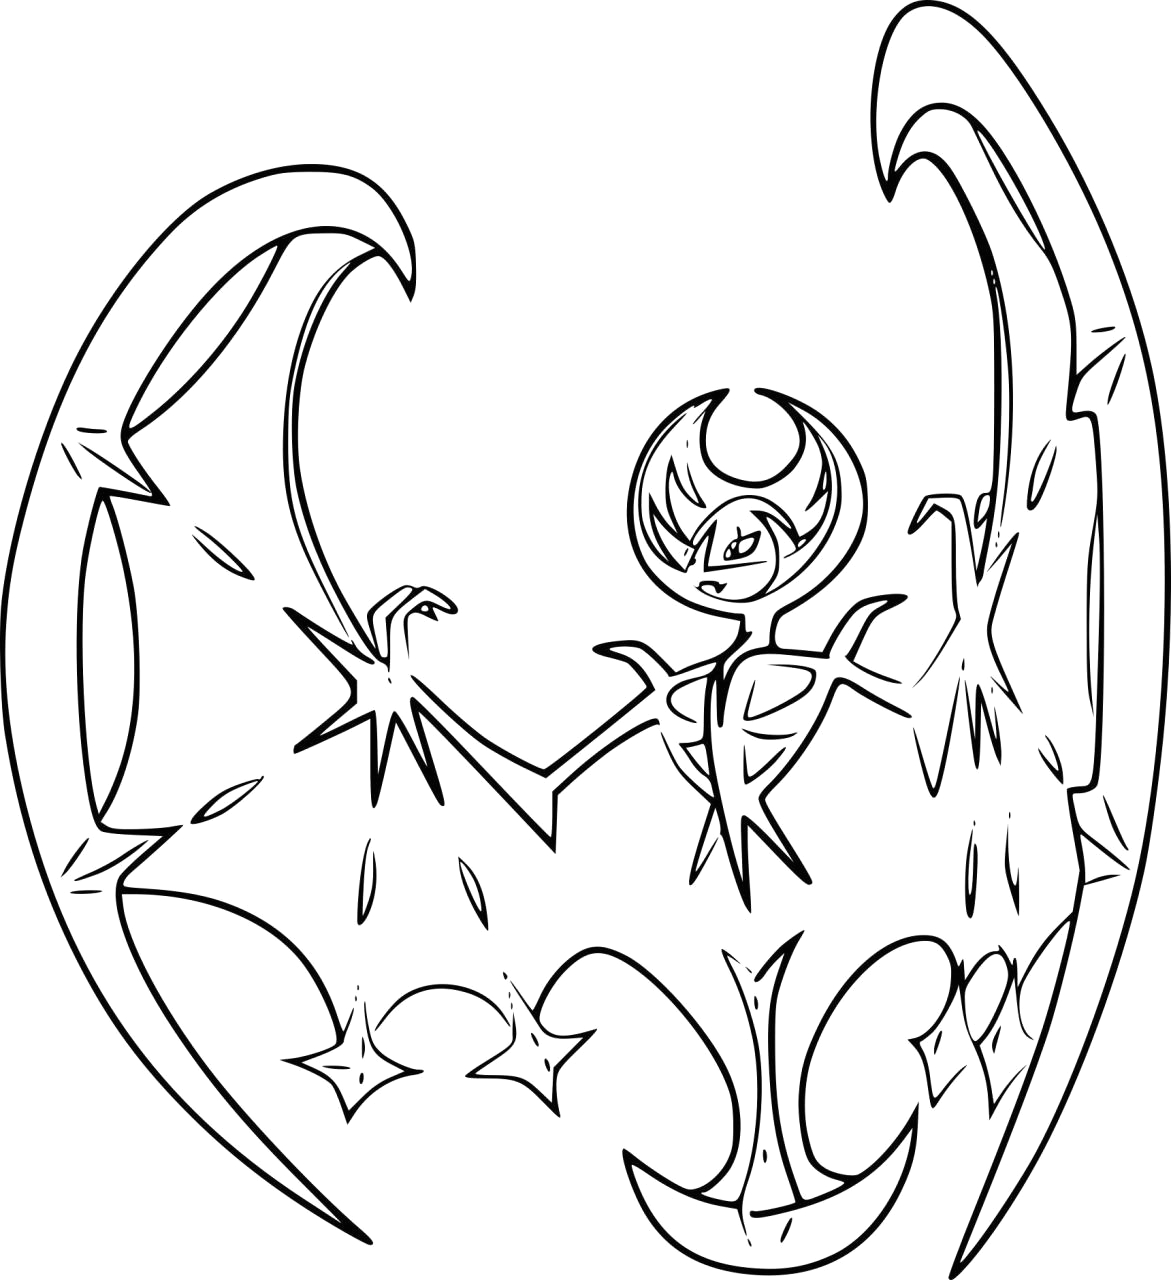 Pokemon Sun and Moon Coloring Pages Legendaries Legendary Mega Sun and Moon Pokemon Coloring Pages